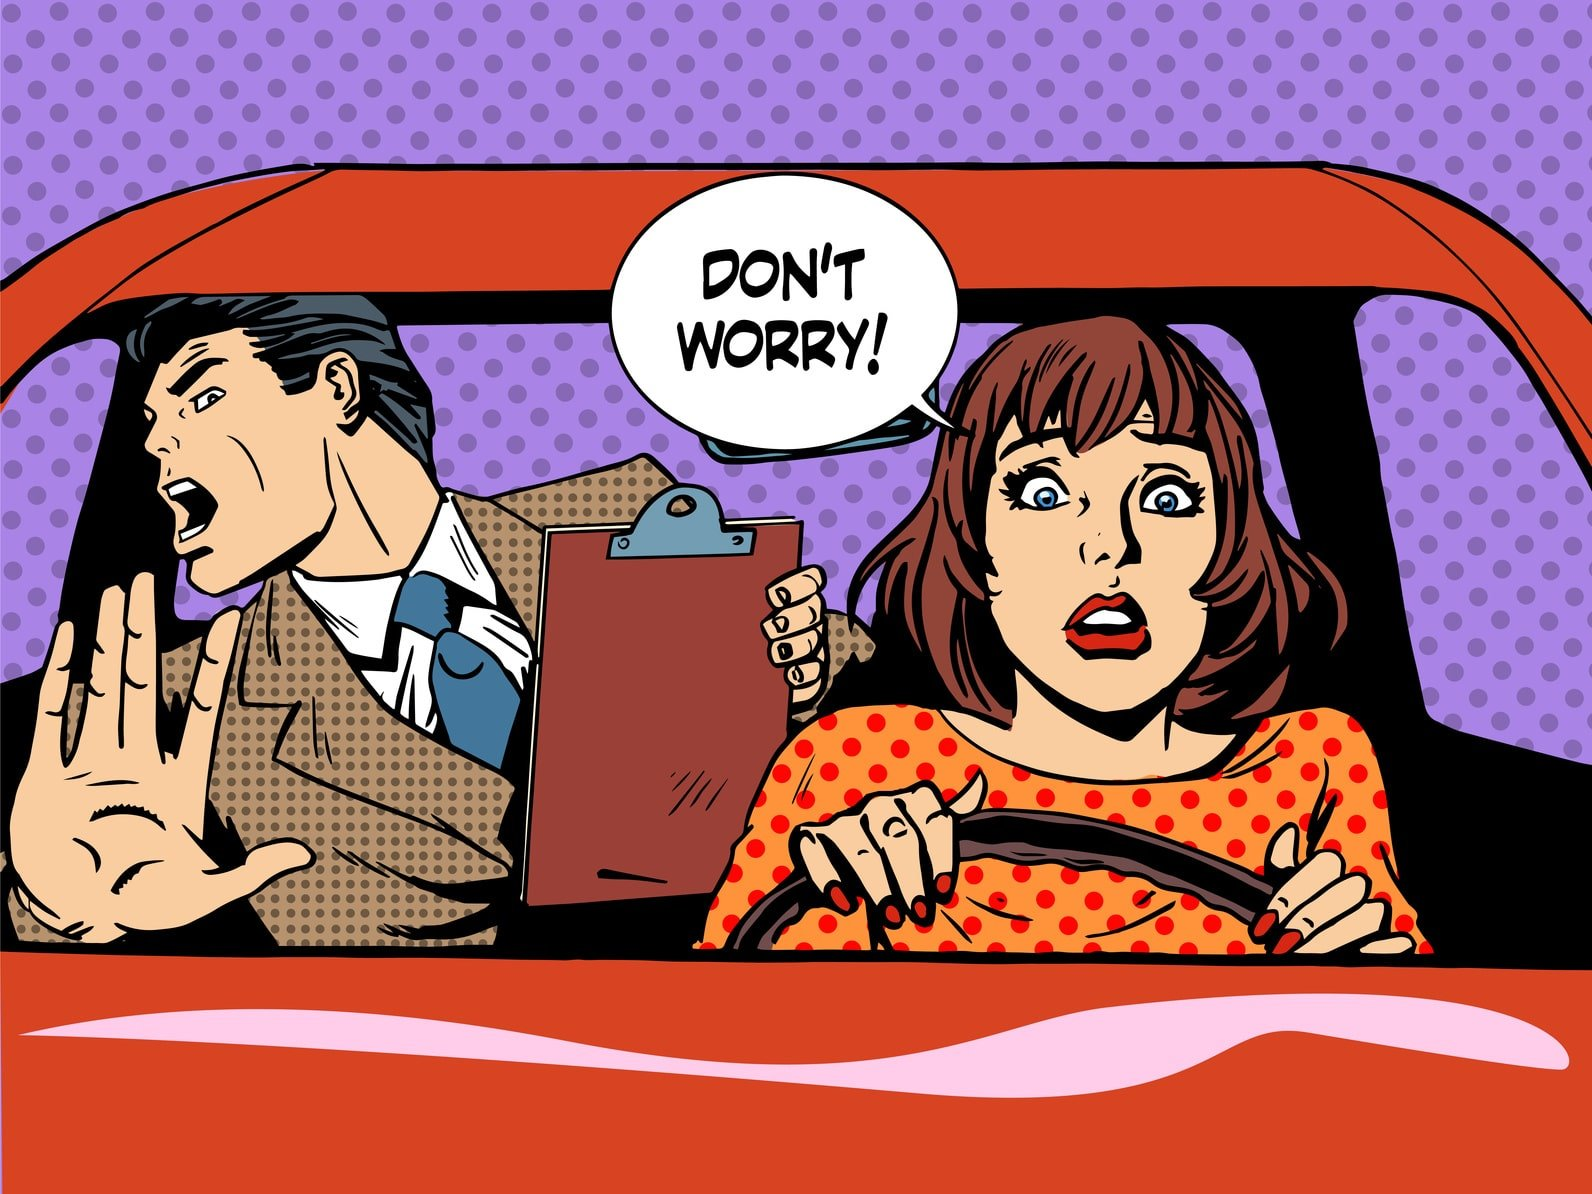 woman driver driving school panic calm retro style pop art. Car and transport